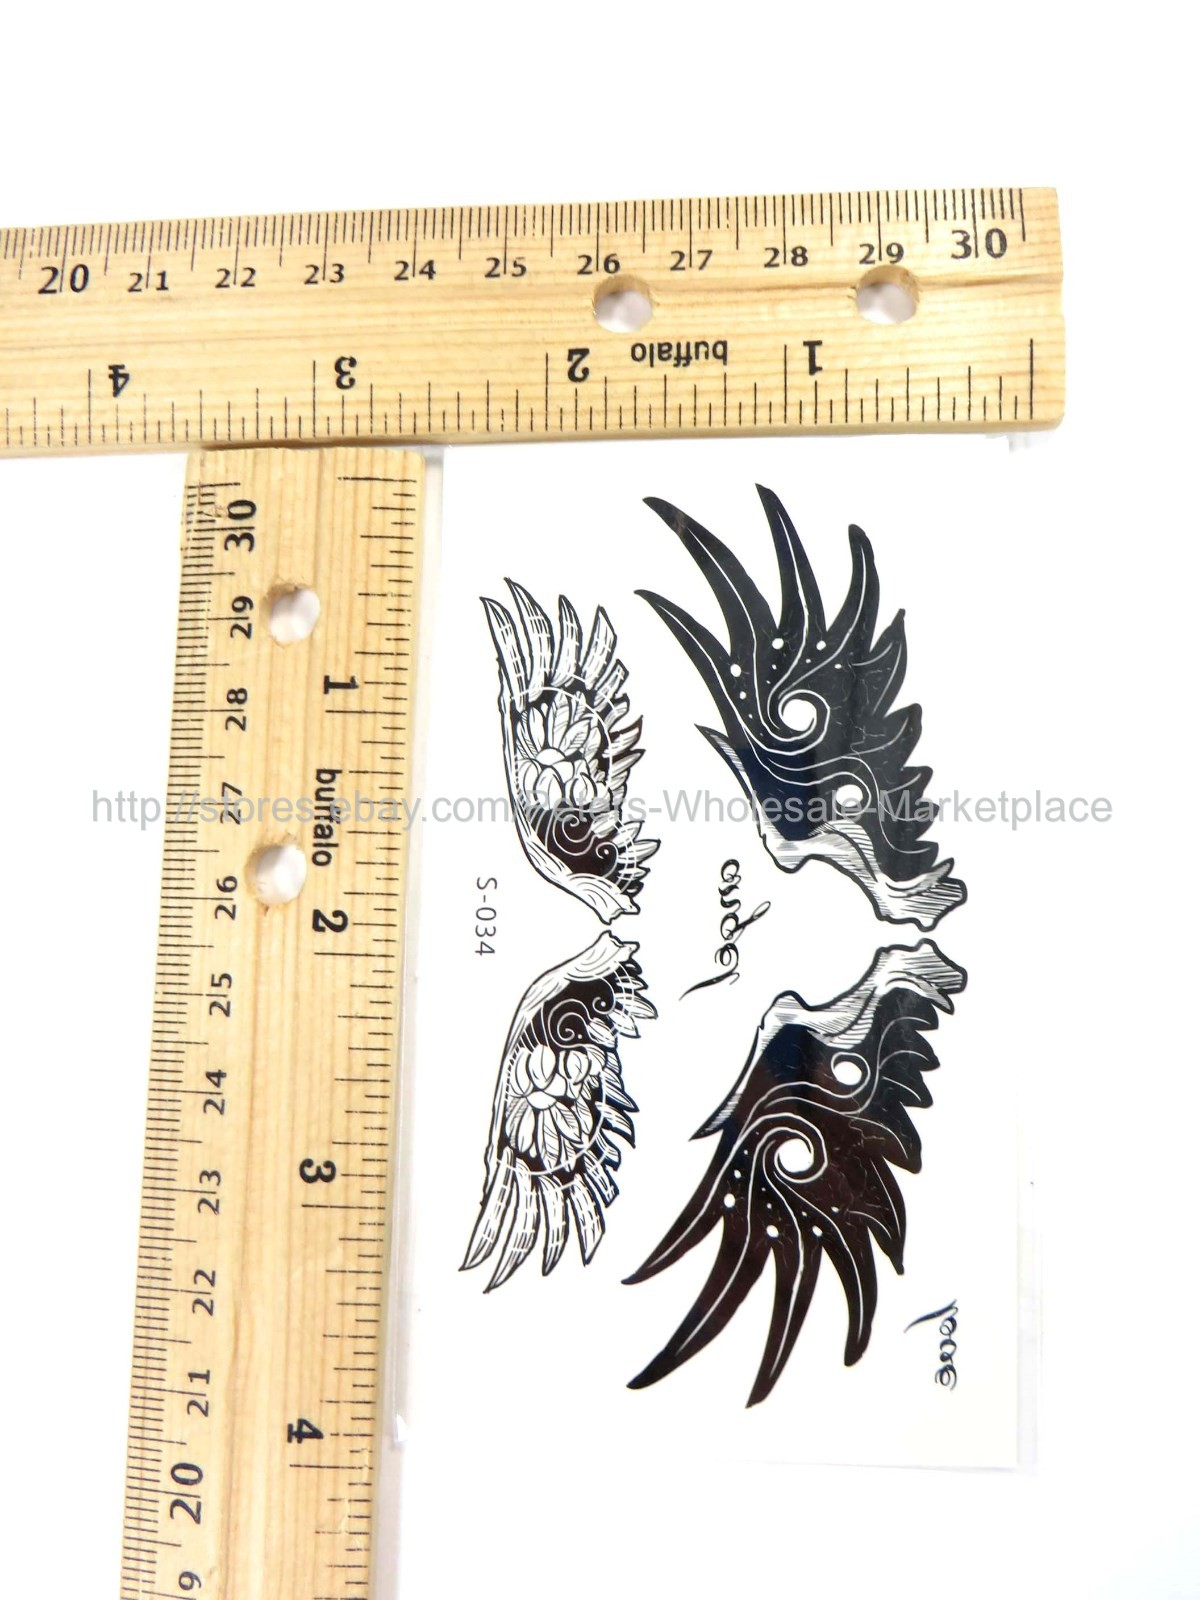 12 Sheets Temporary Tattoo Stickers Transfers For Adults Ideas And Designs